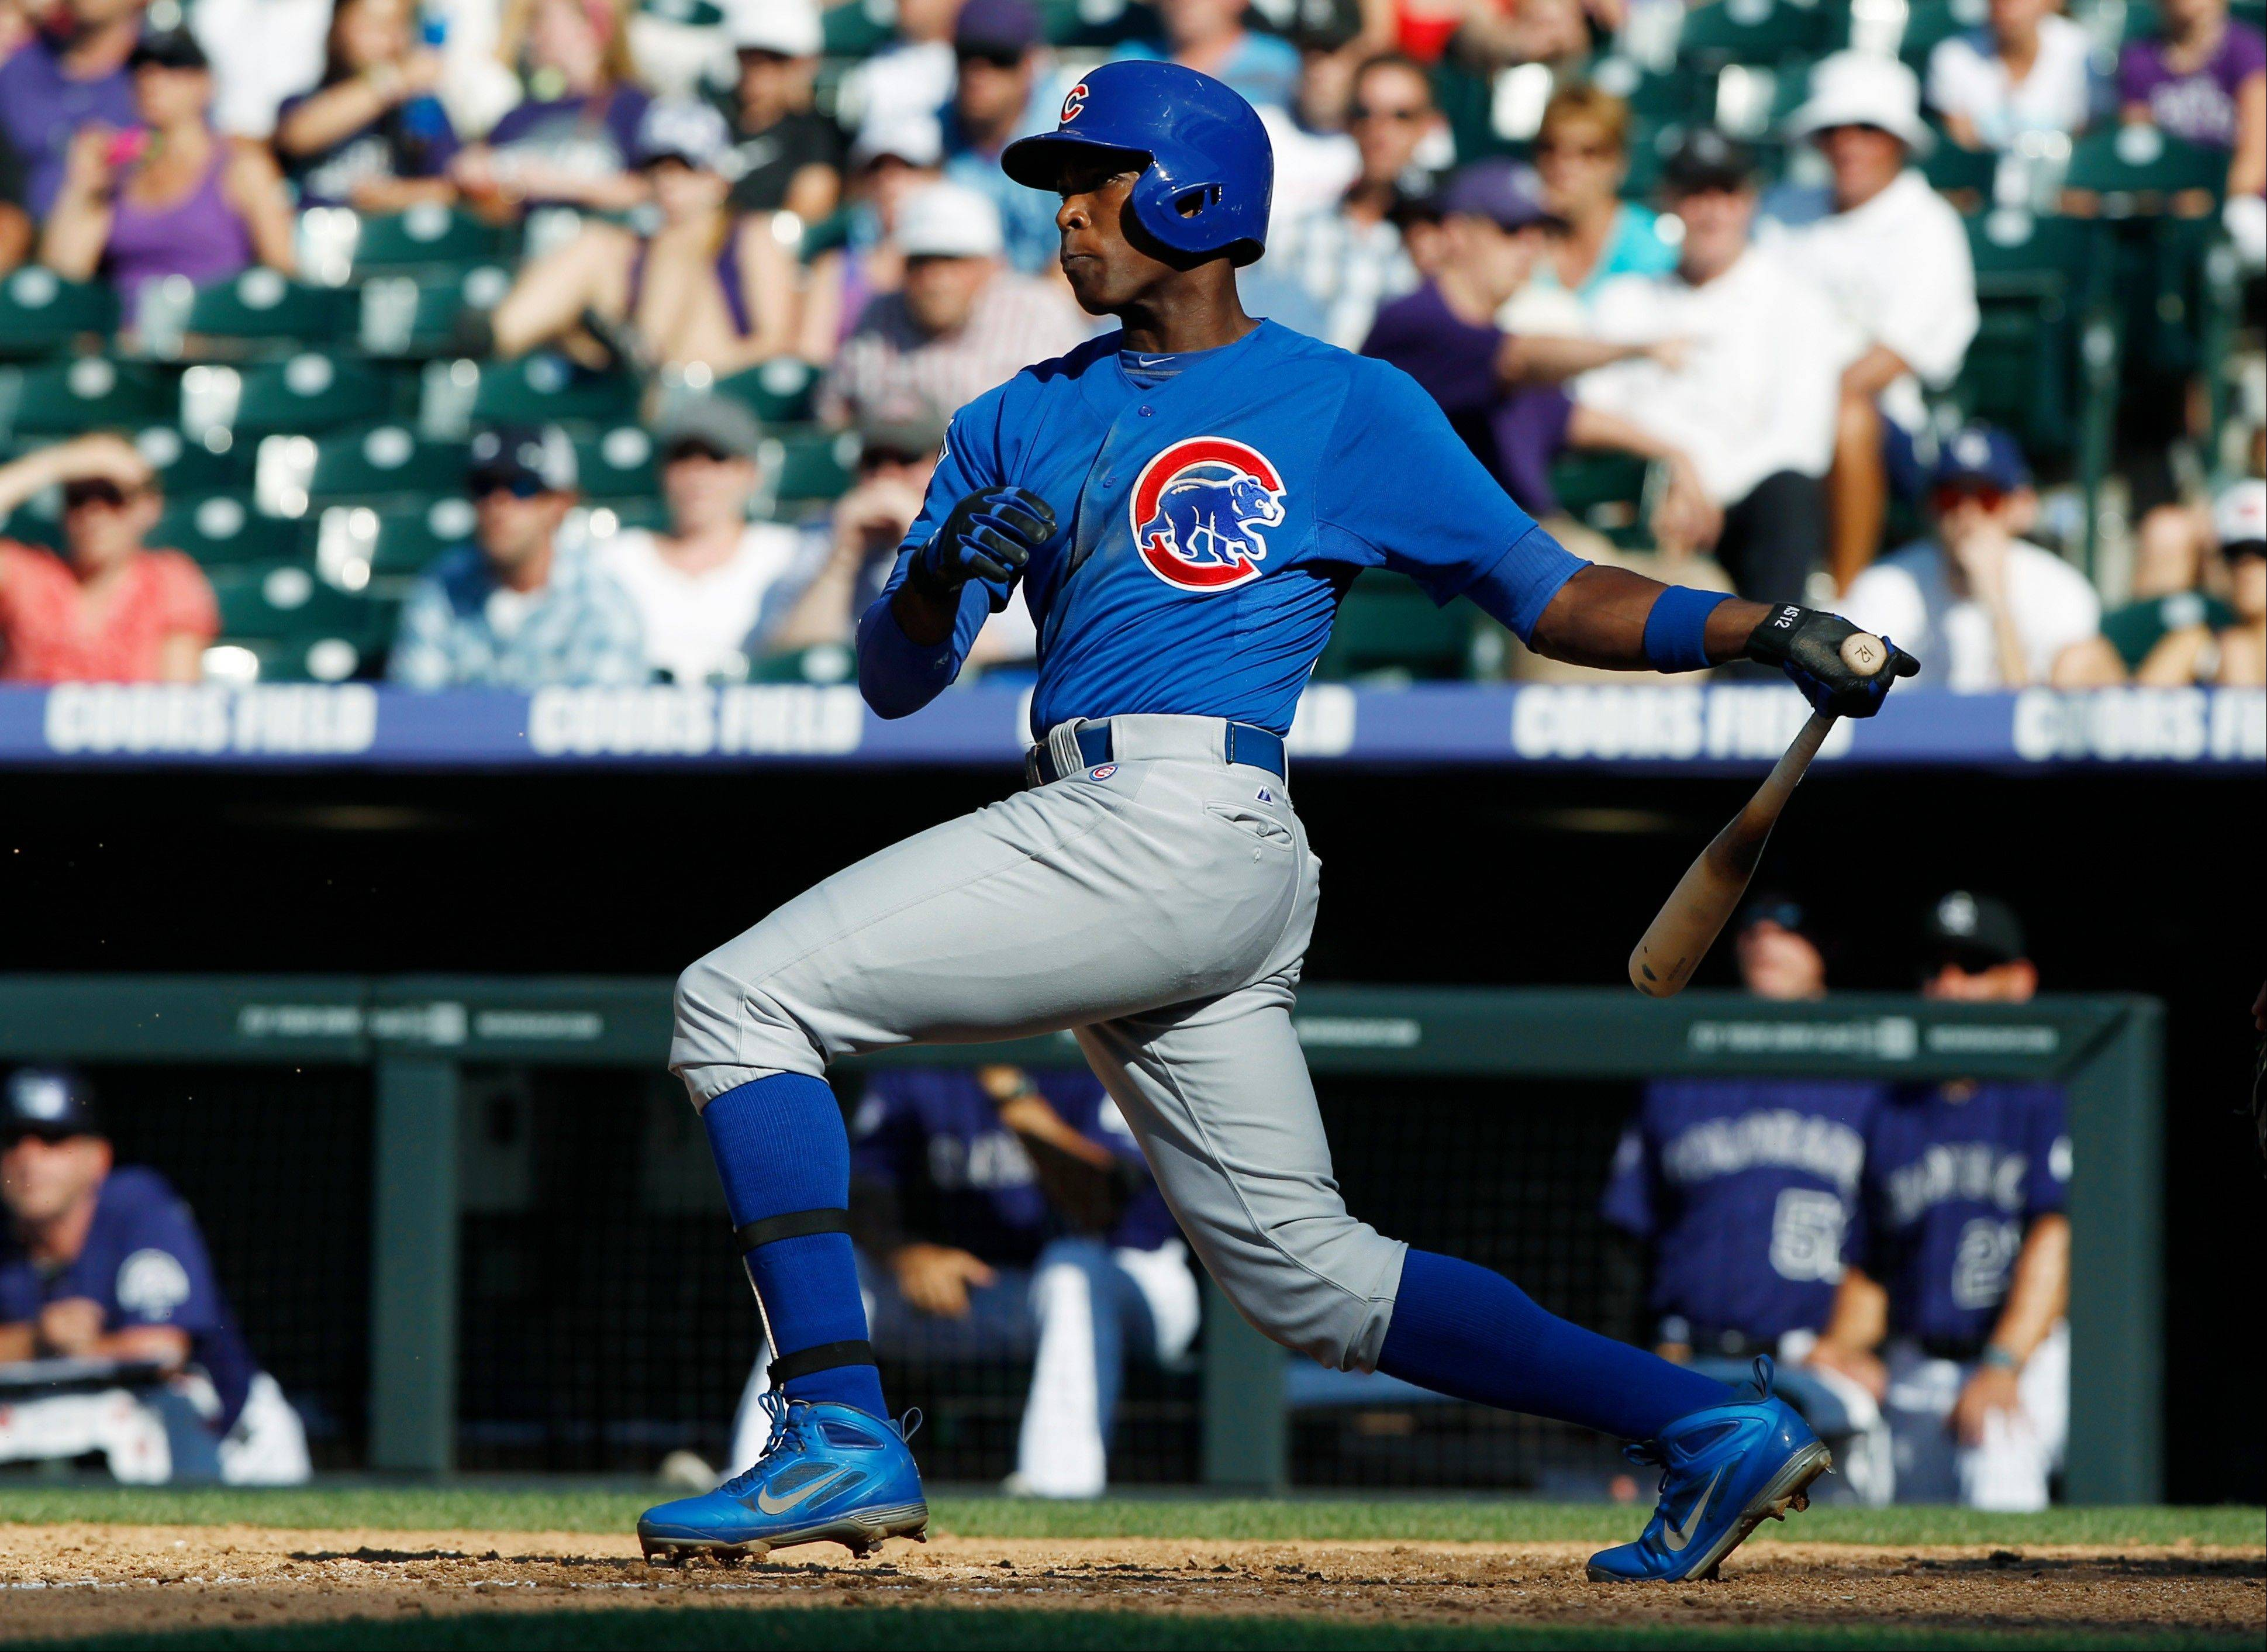 Chicago Cubs outfielder Alfonso Soriano grounds out to drive in a run against the Colorado Rockies in the ninth inning of the Rockies� 4-3 victory on Sunday.